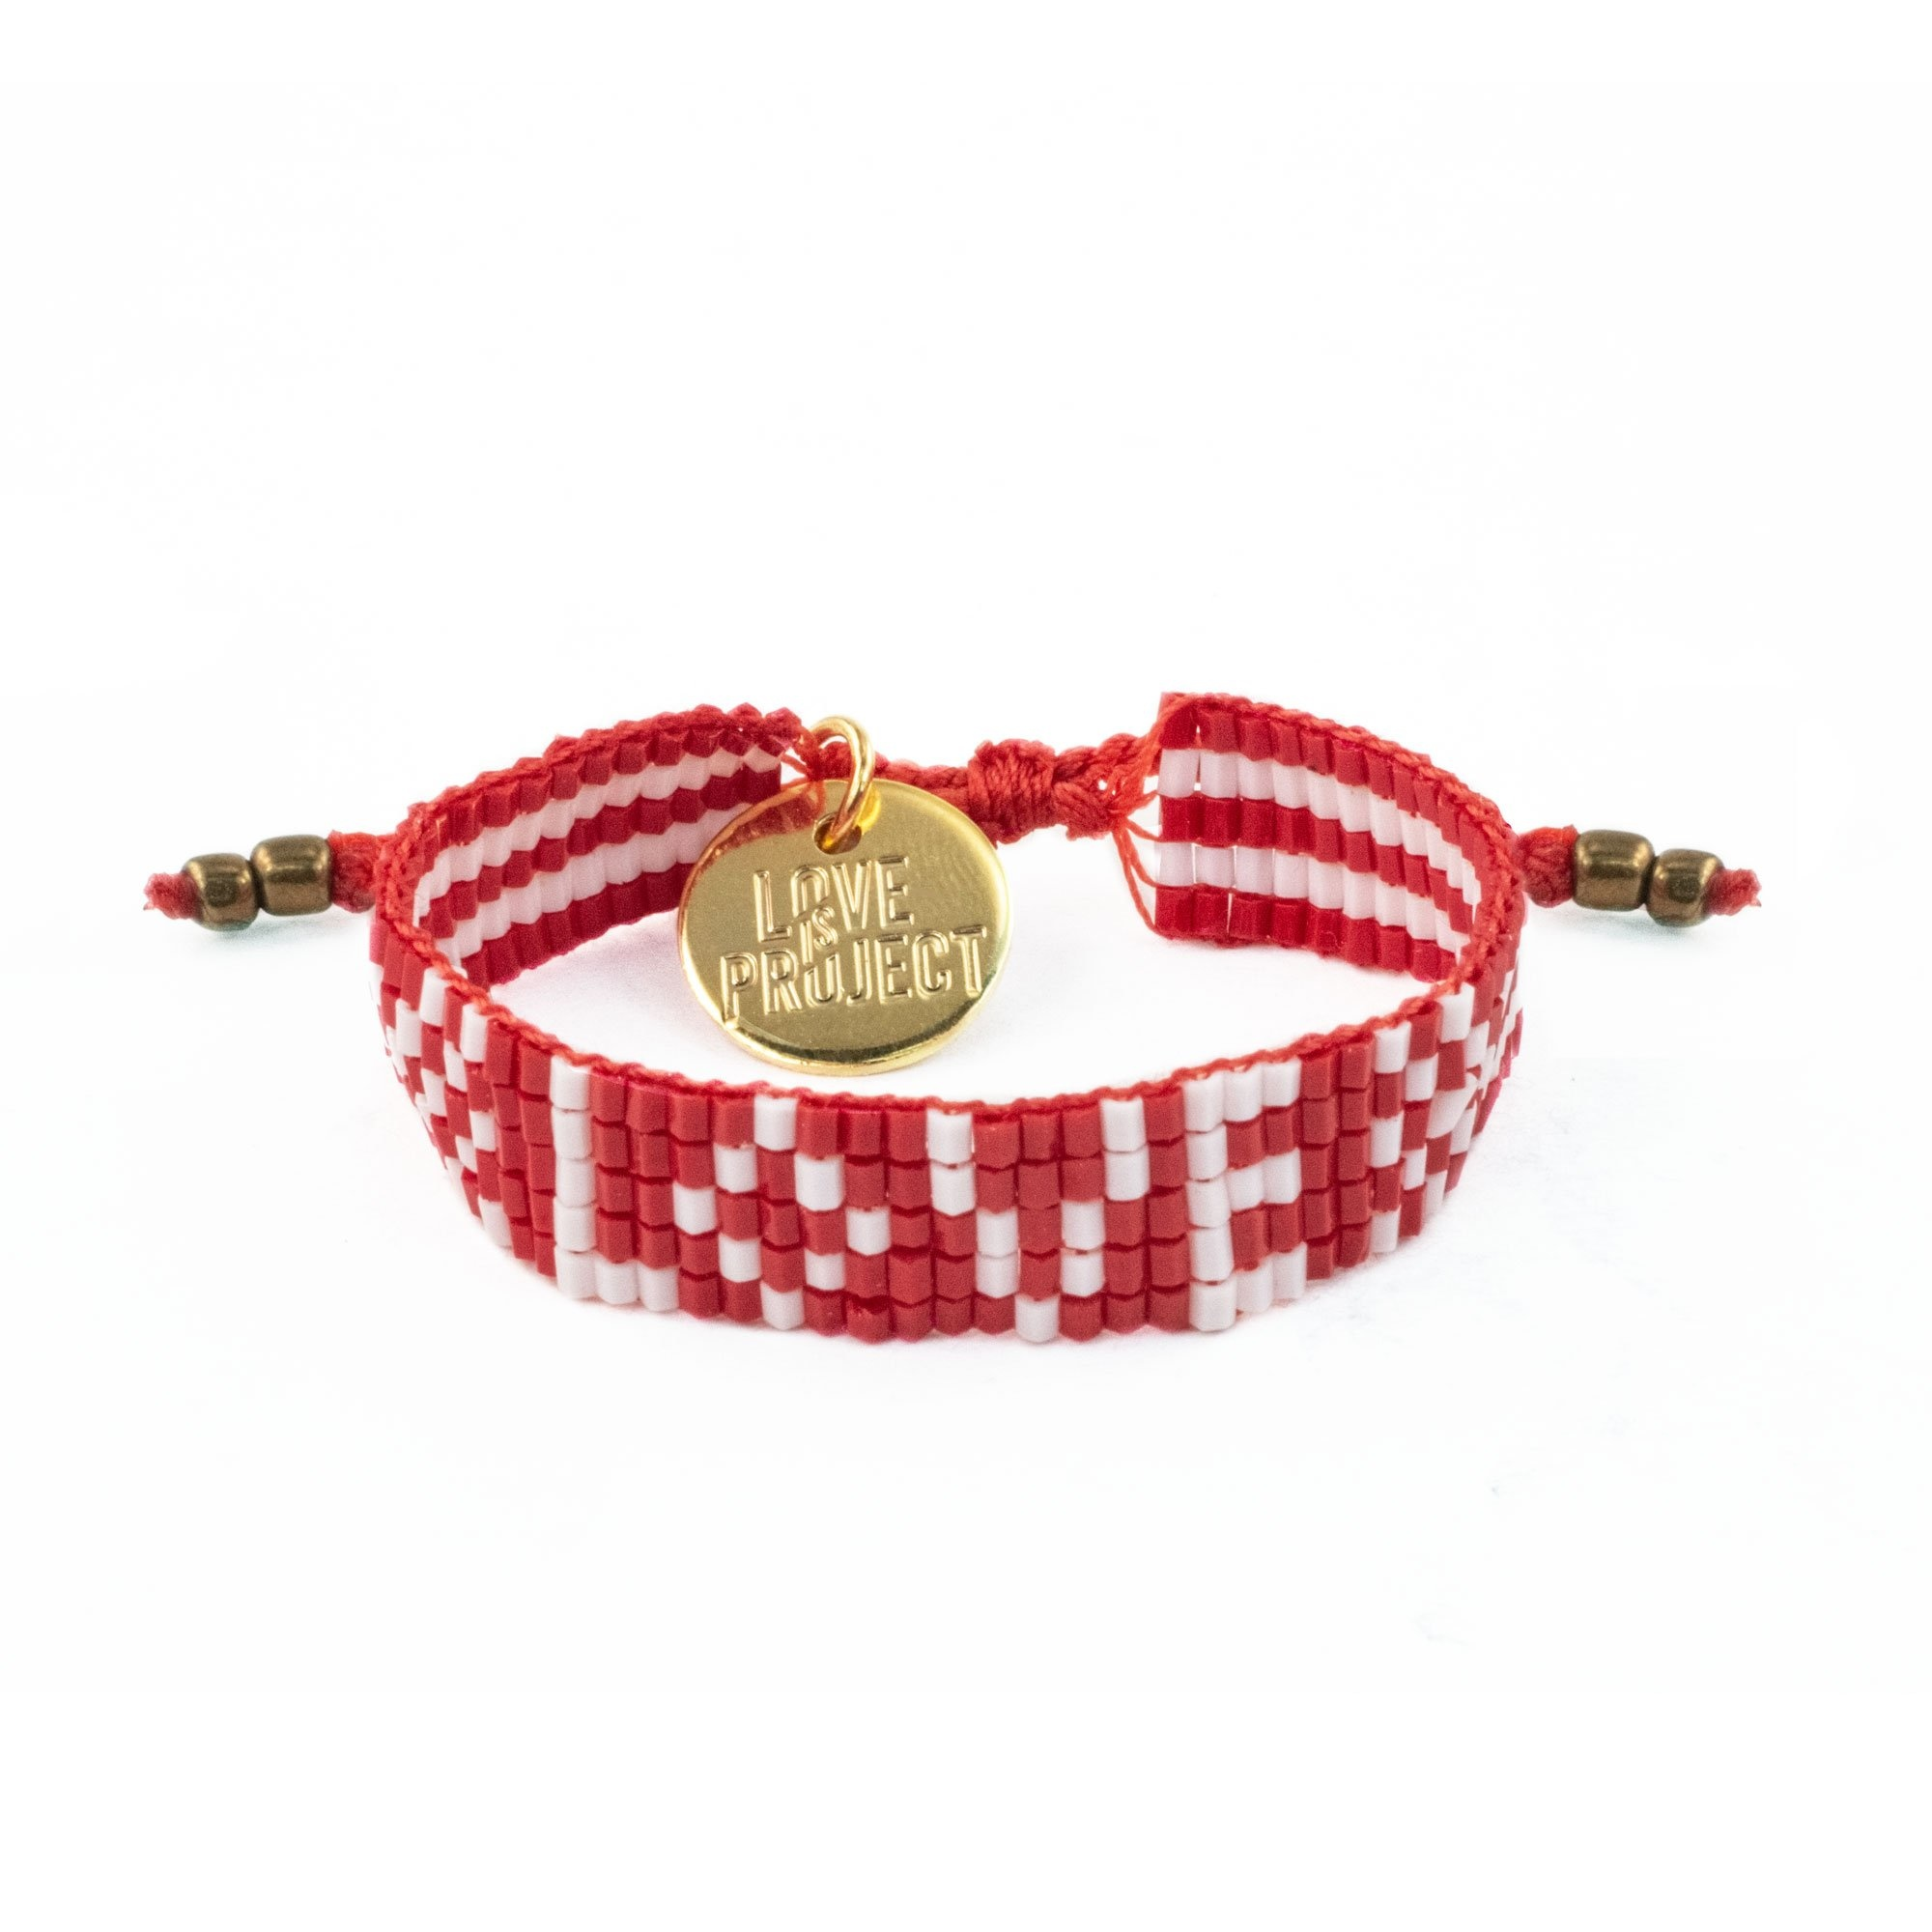 Love Project Kids' Seed Bead LOVE Bracelet - Red